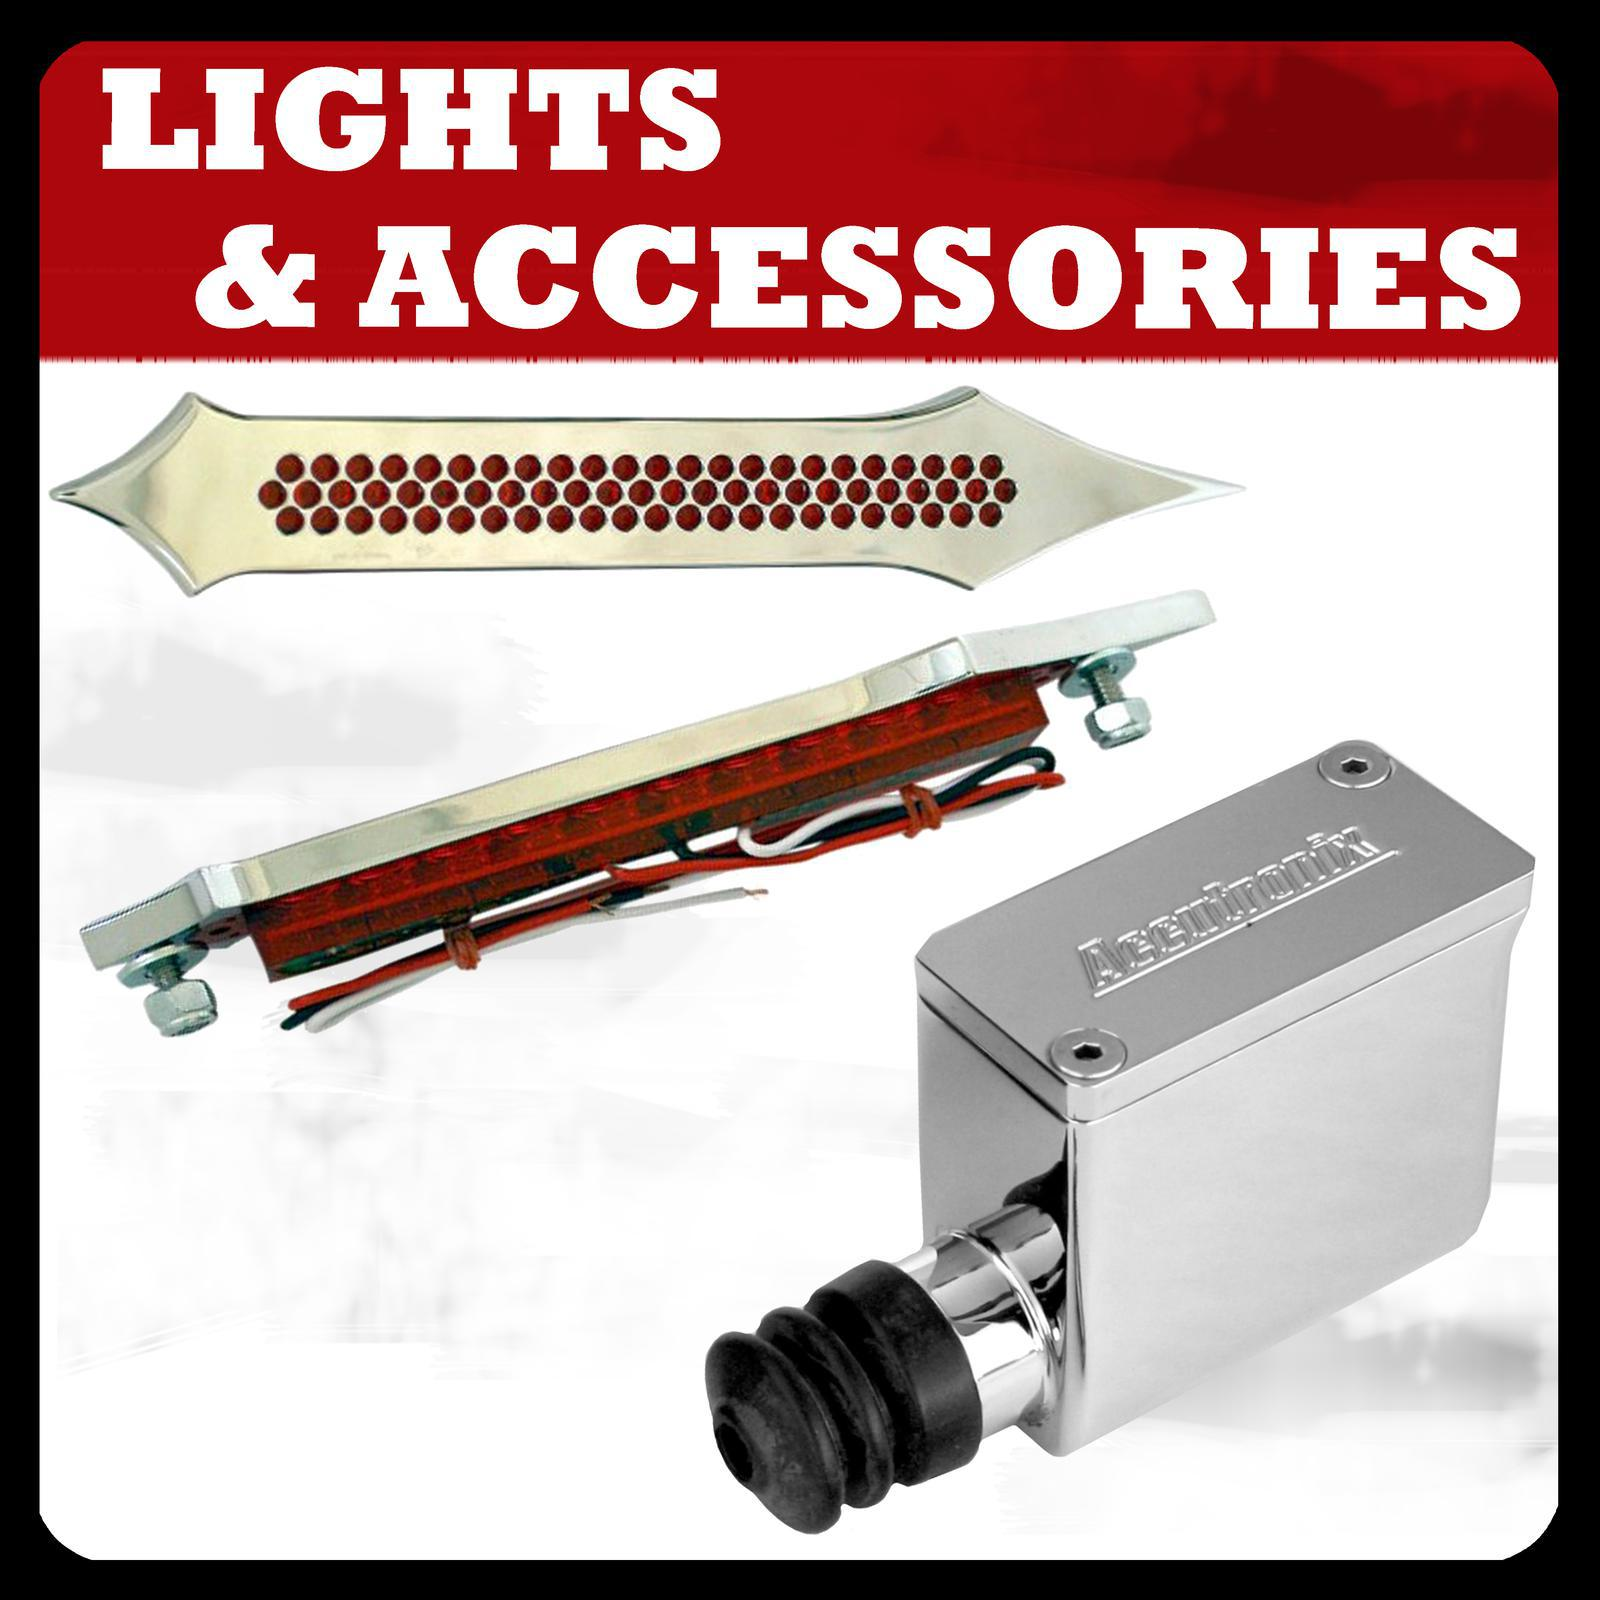 Lights & Accessories